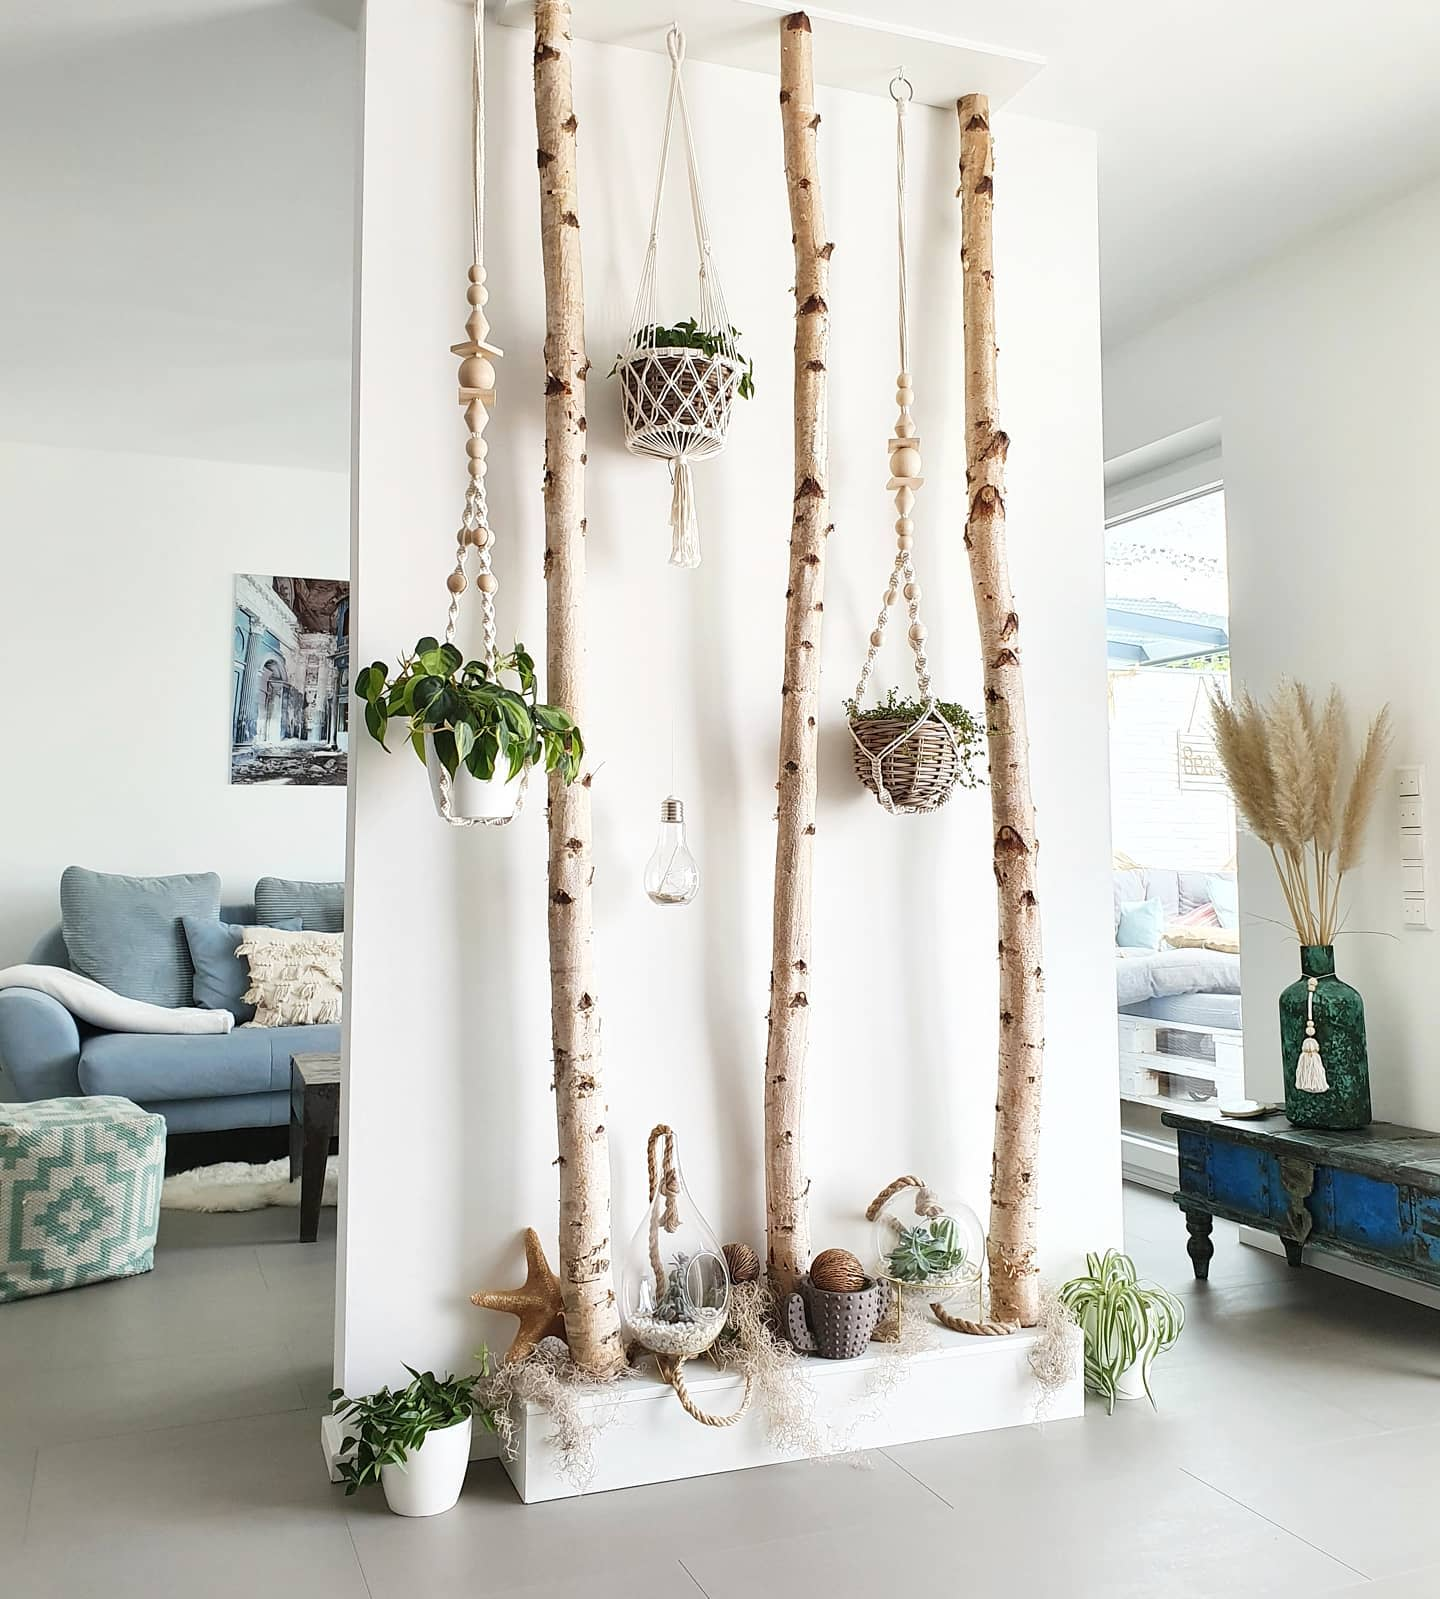 Hanging Dining Room Wall Decor Ideas -beachhouse_cologne